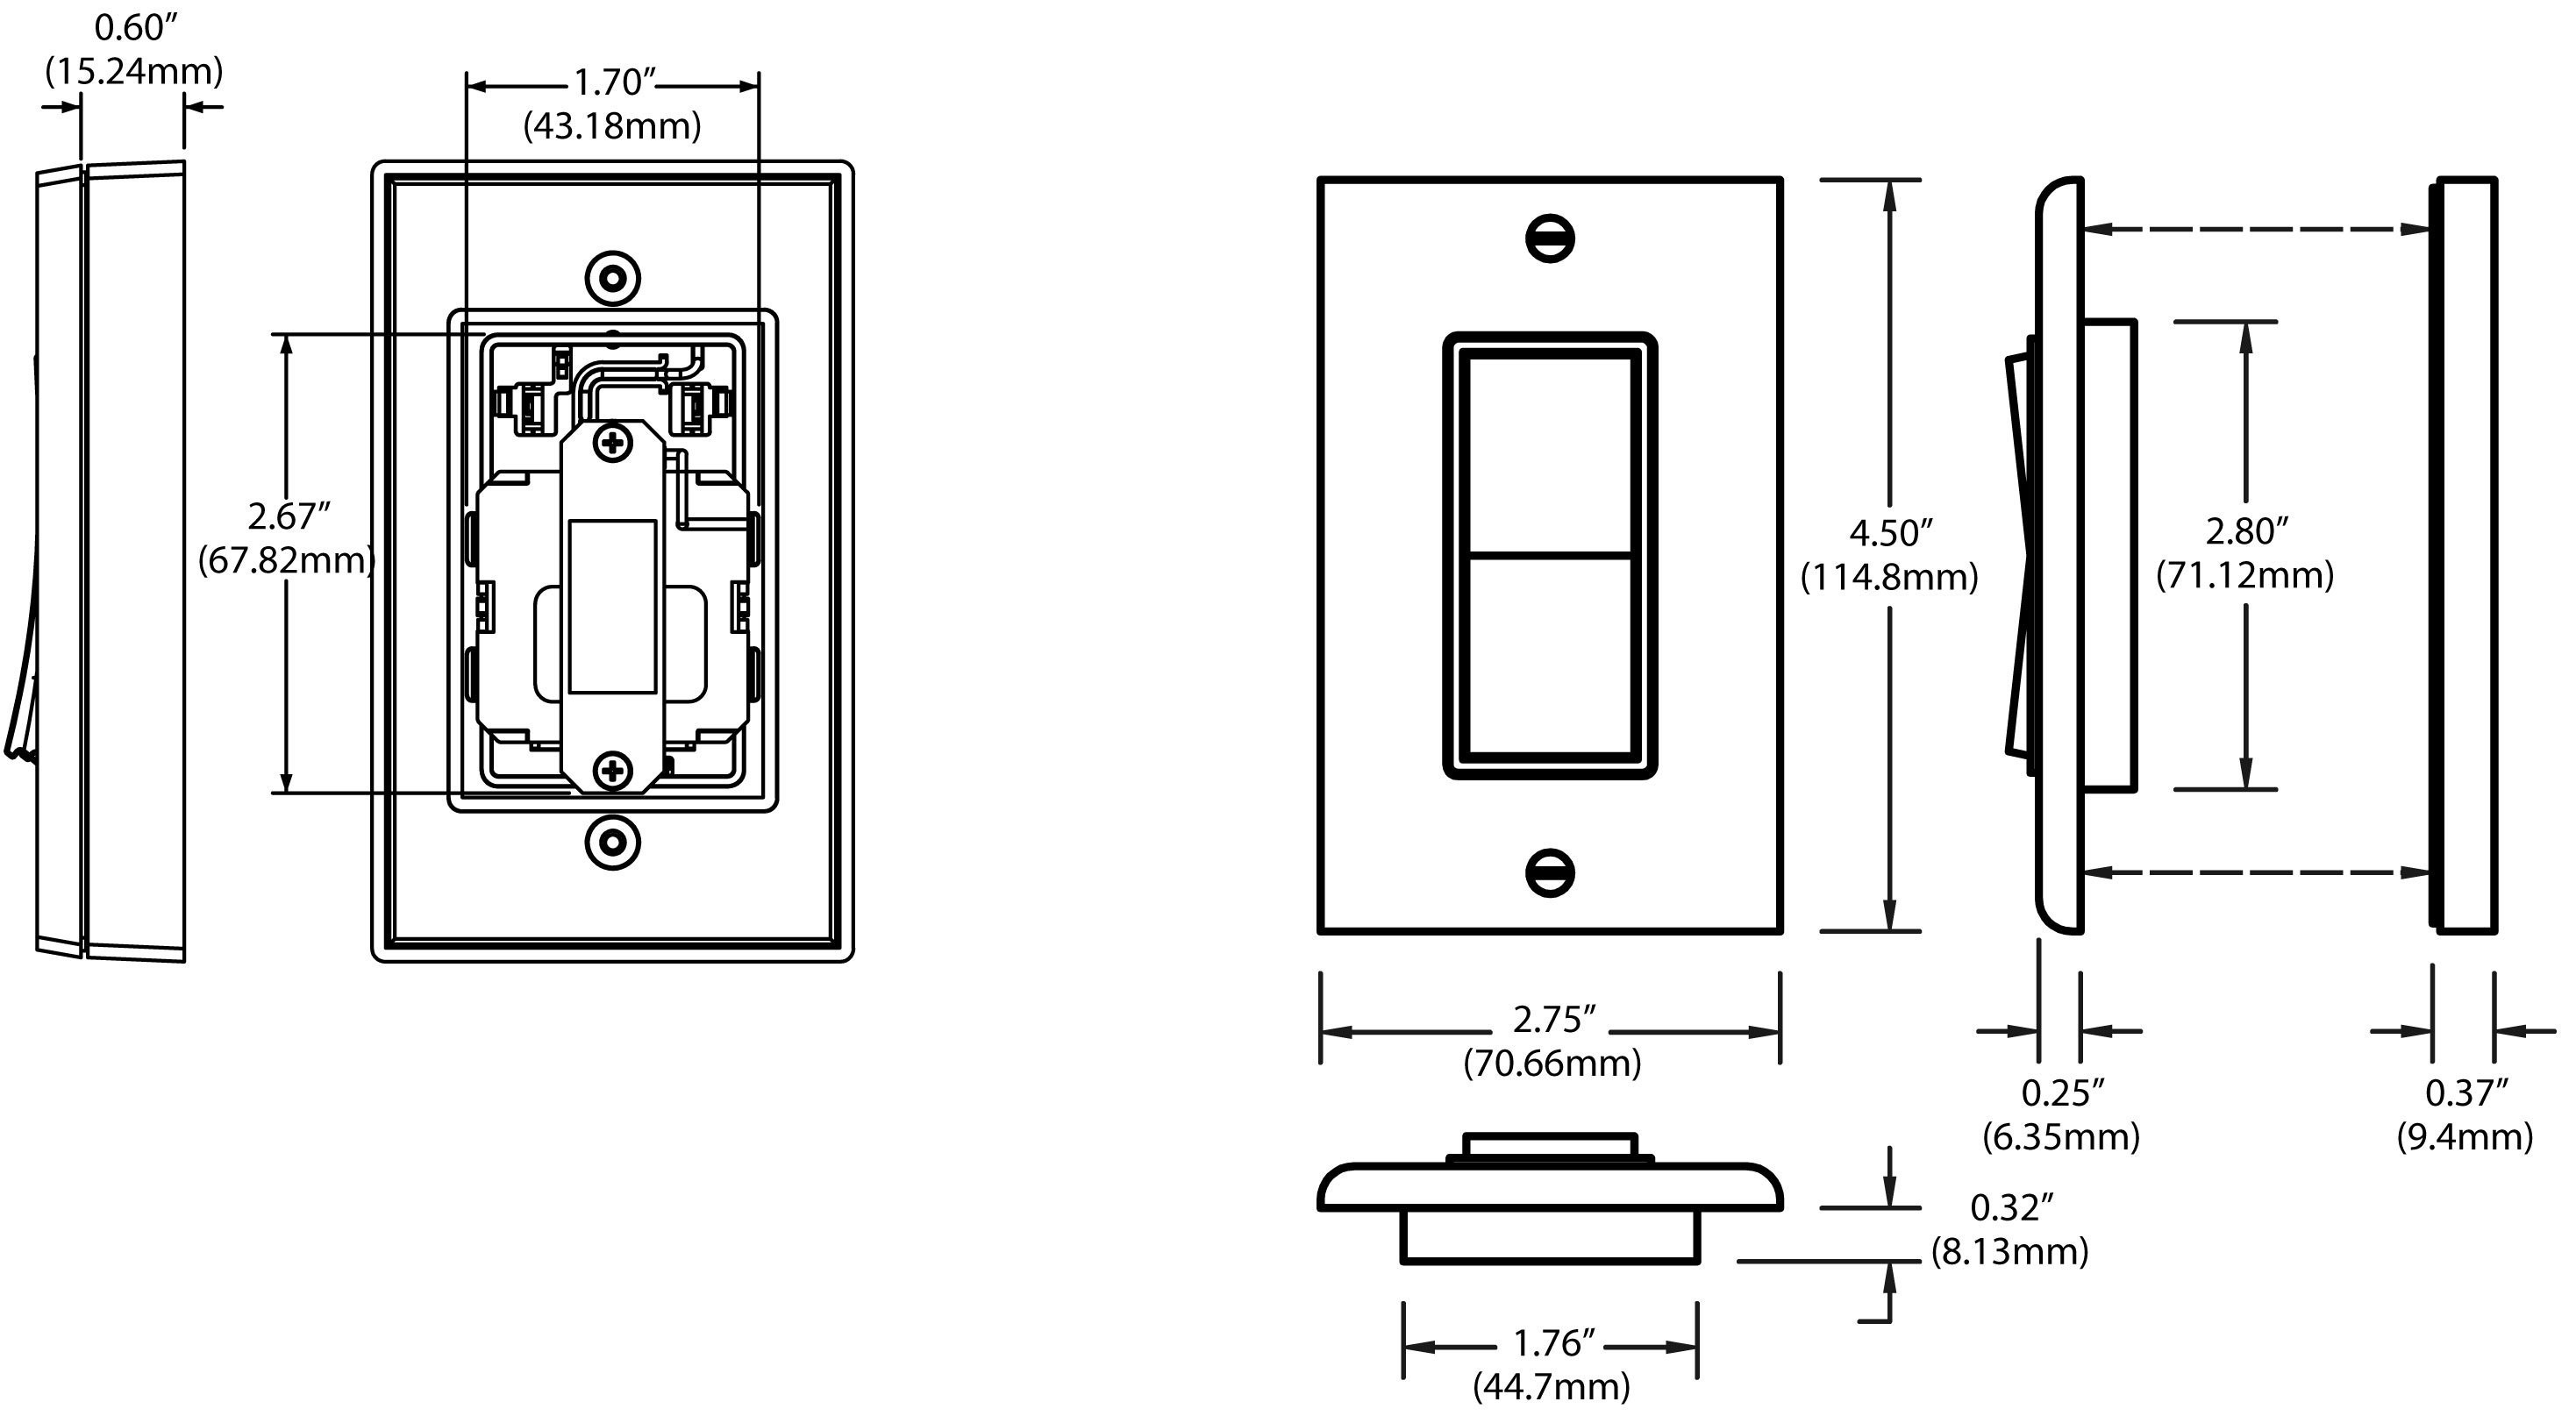 Lutron Maestro Wiring Diagram Luxury 3 Way Wiring Diagram Diagram Of Lutron Maestro Wiring Diagram